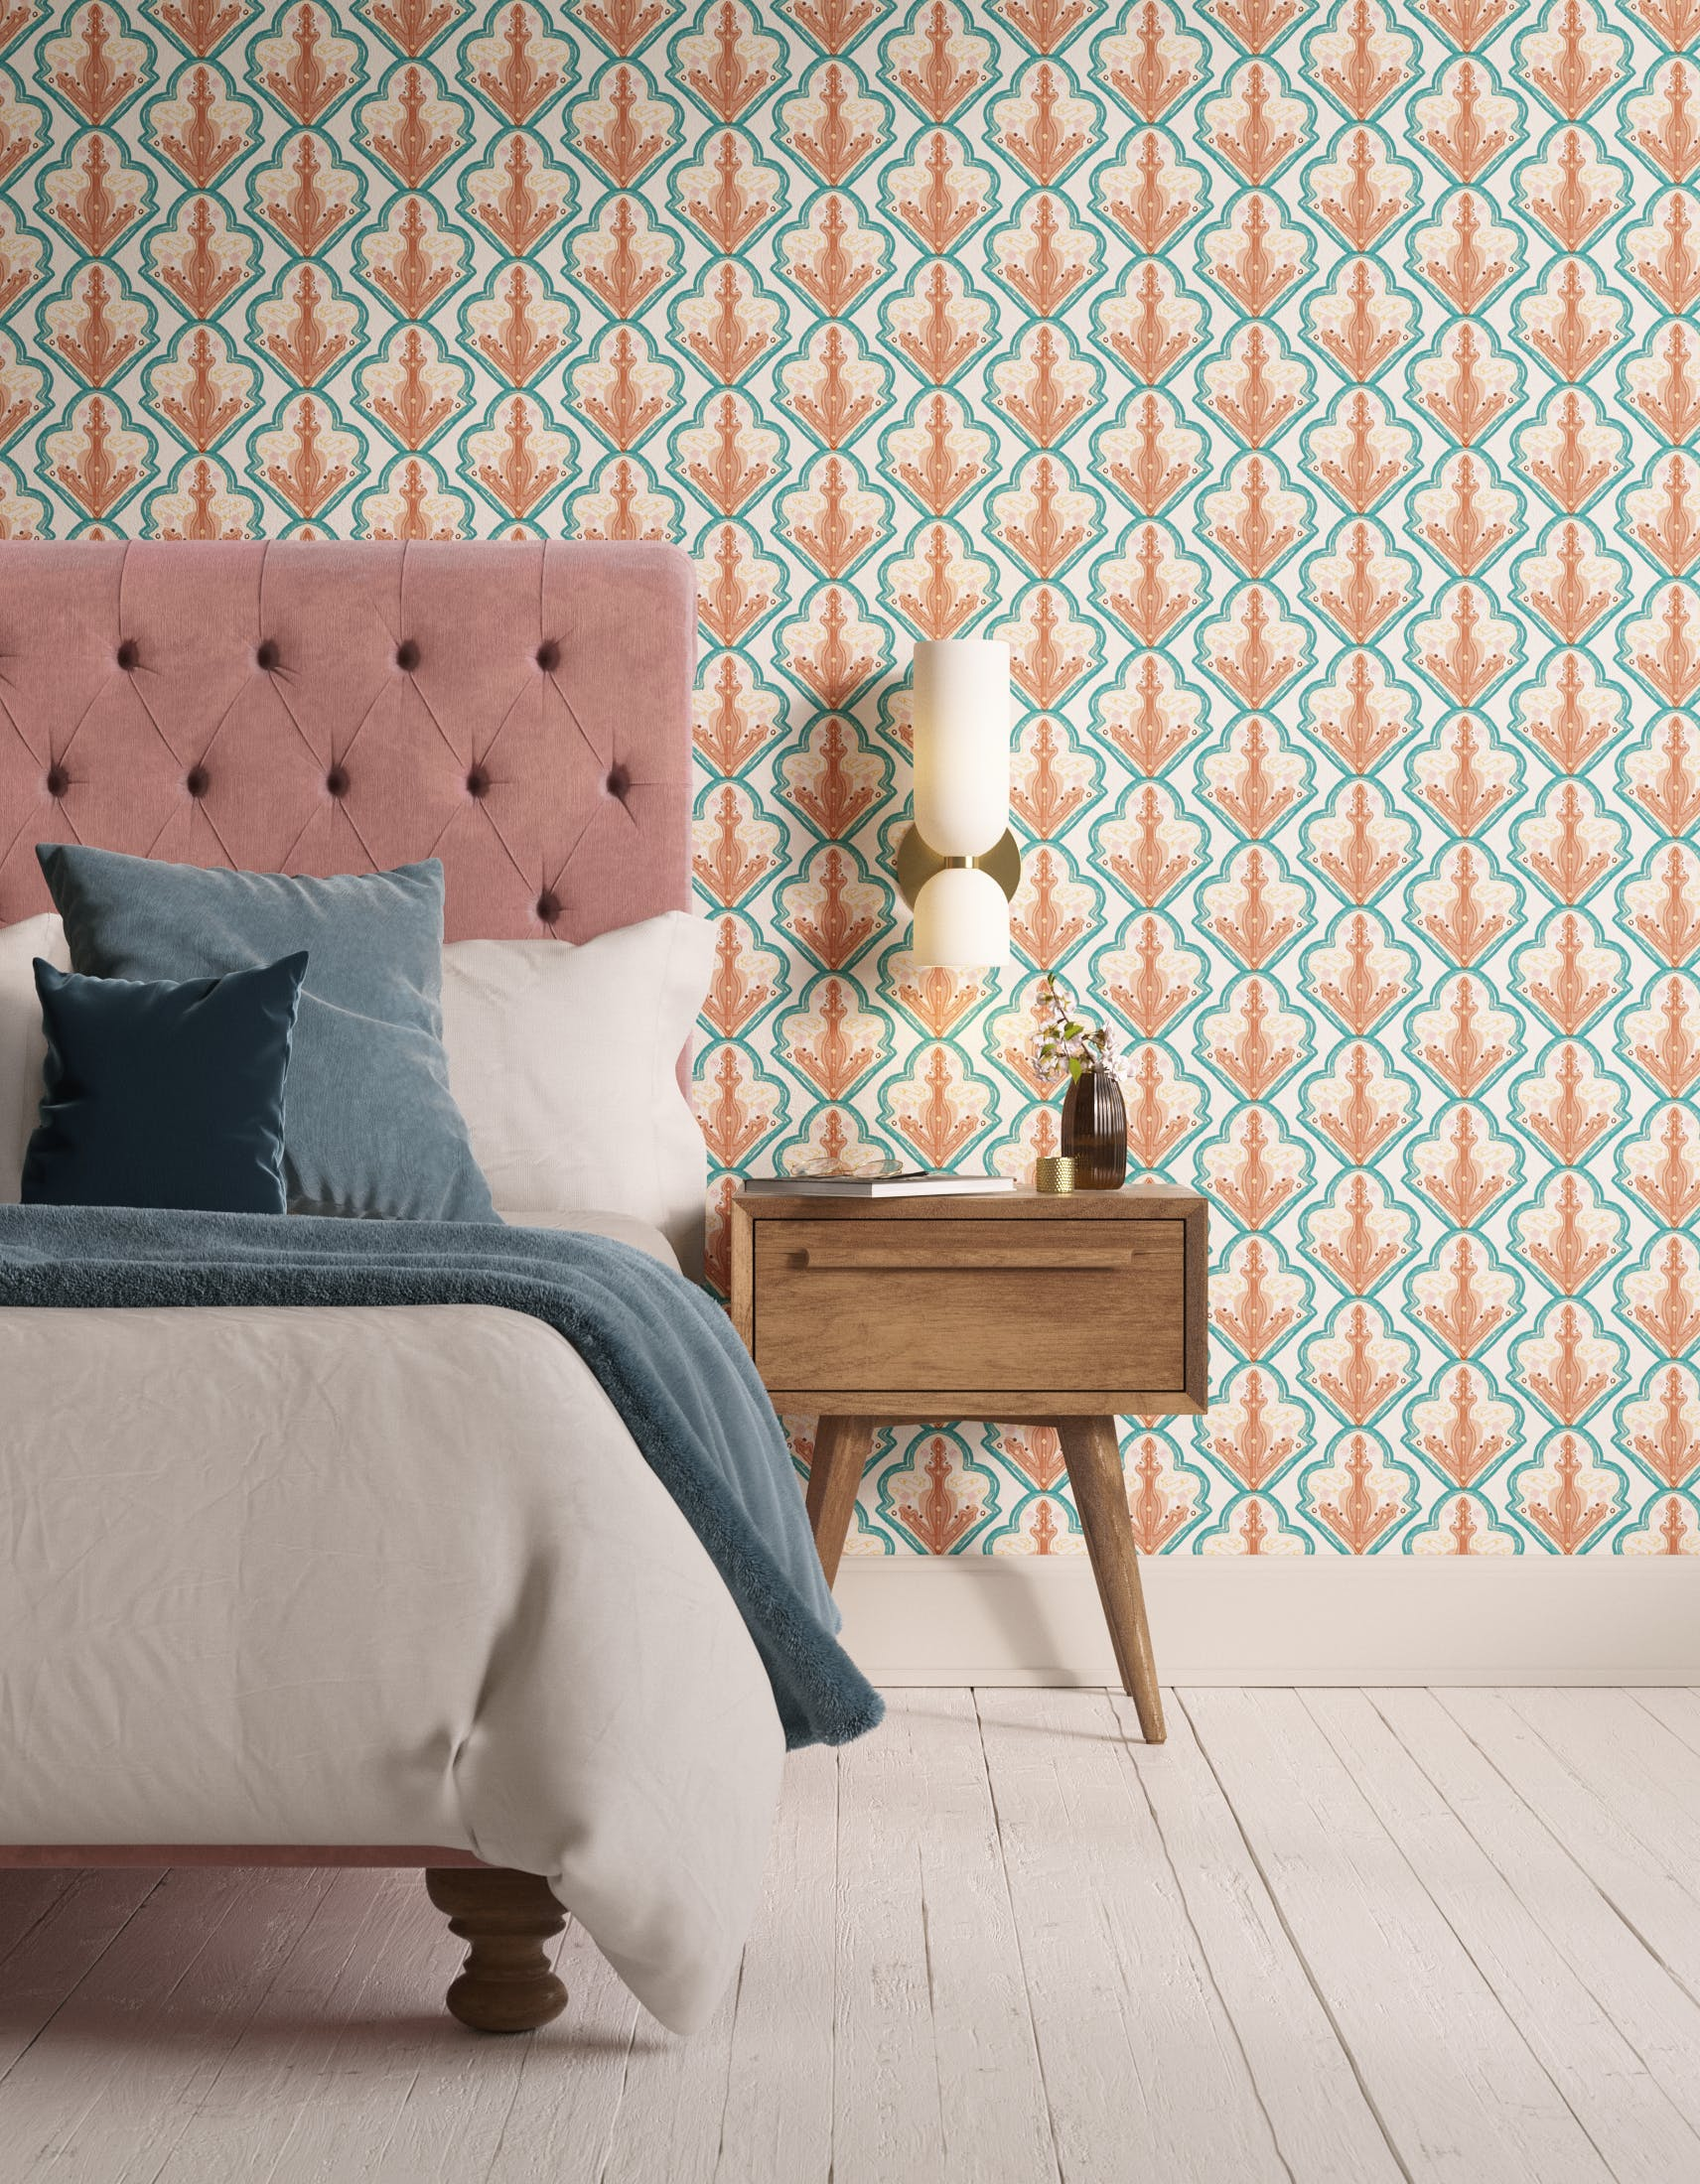 Bedroom decorated with Lick x Lottie McDowell Travelling Tiles 01 mosaic wallpaper